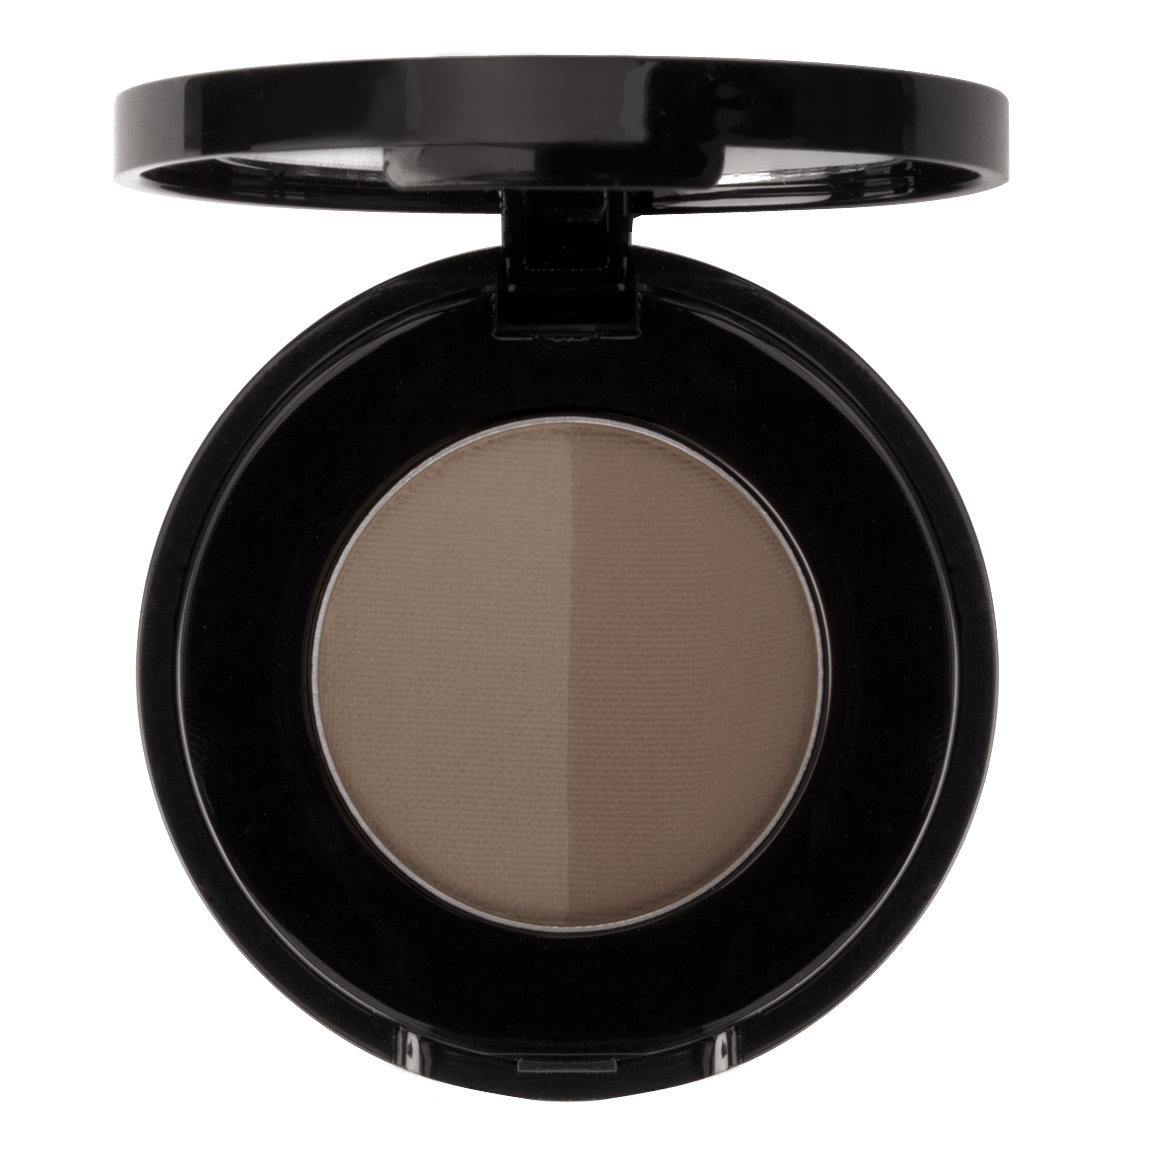 Anastasia Beverly Hills Brow Powder Duo Soft Brown product swatch.